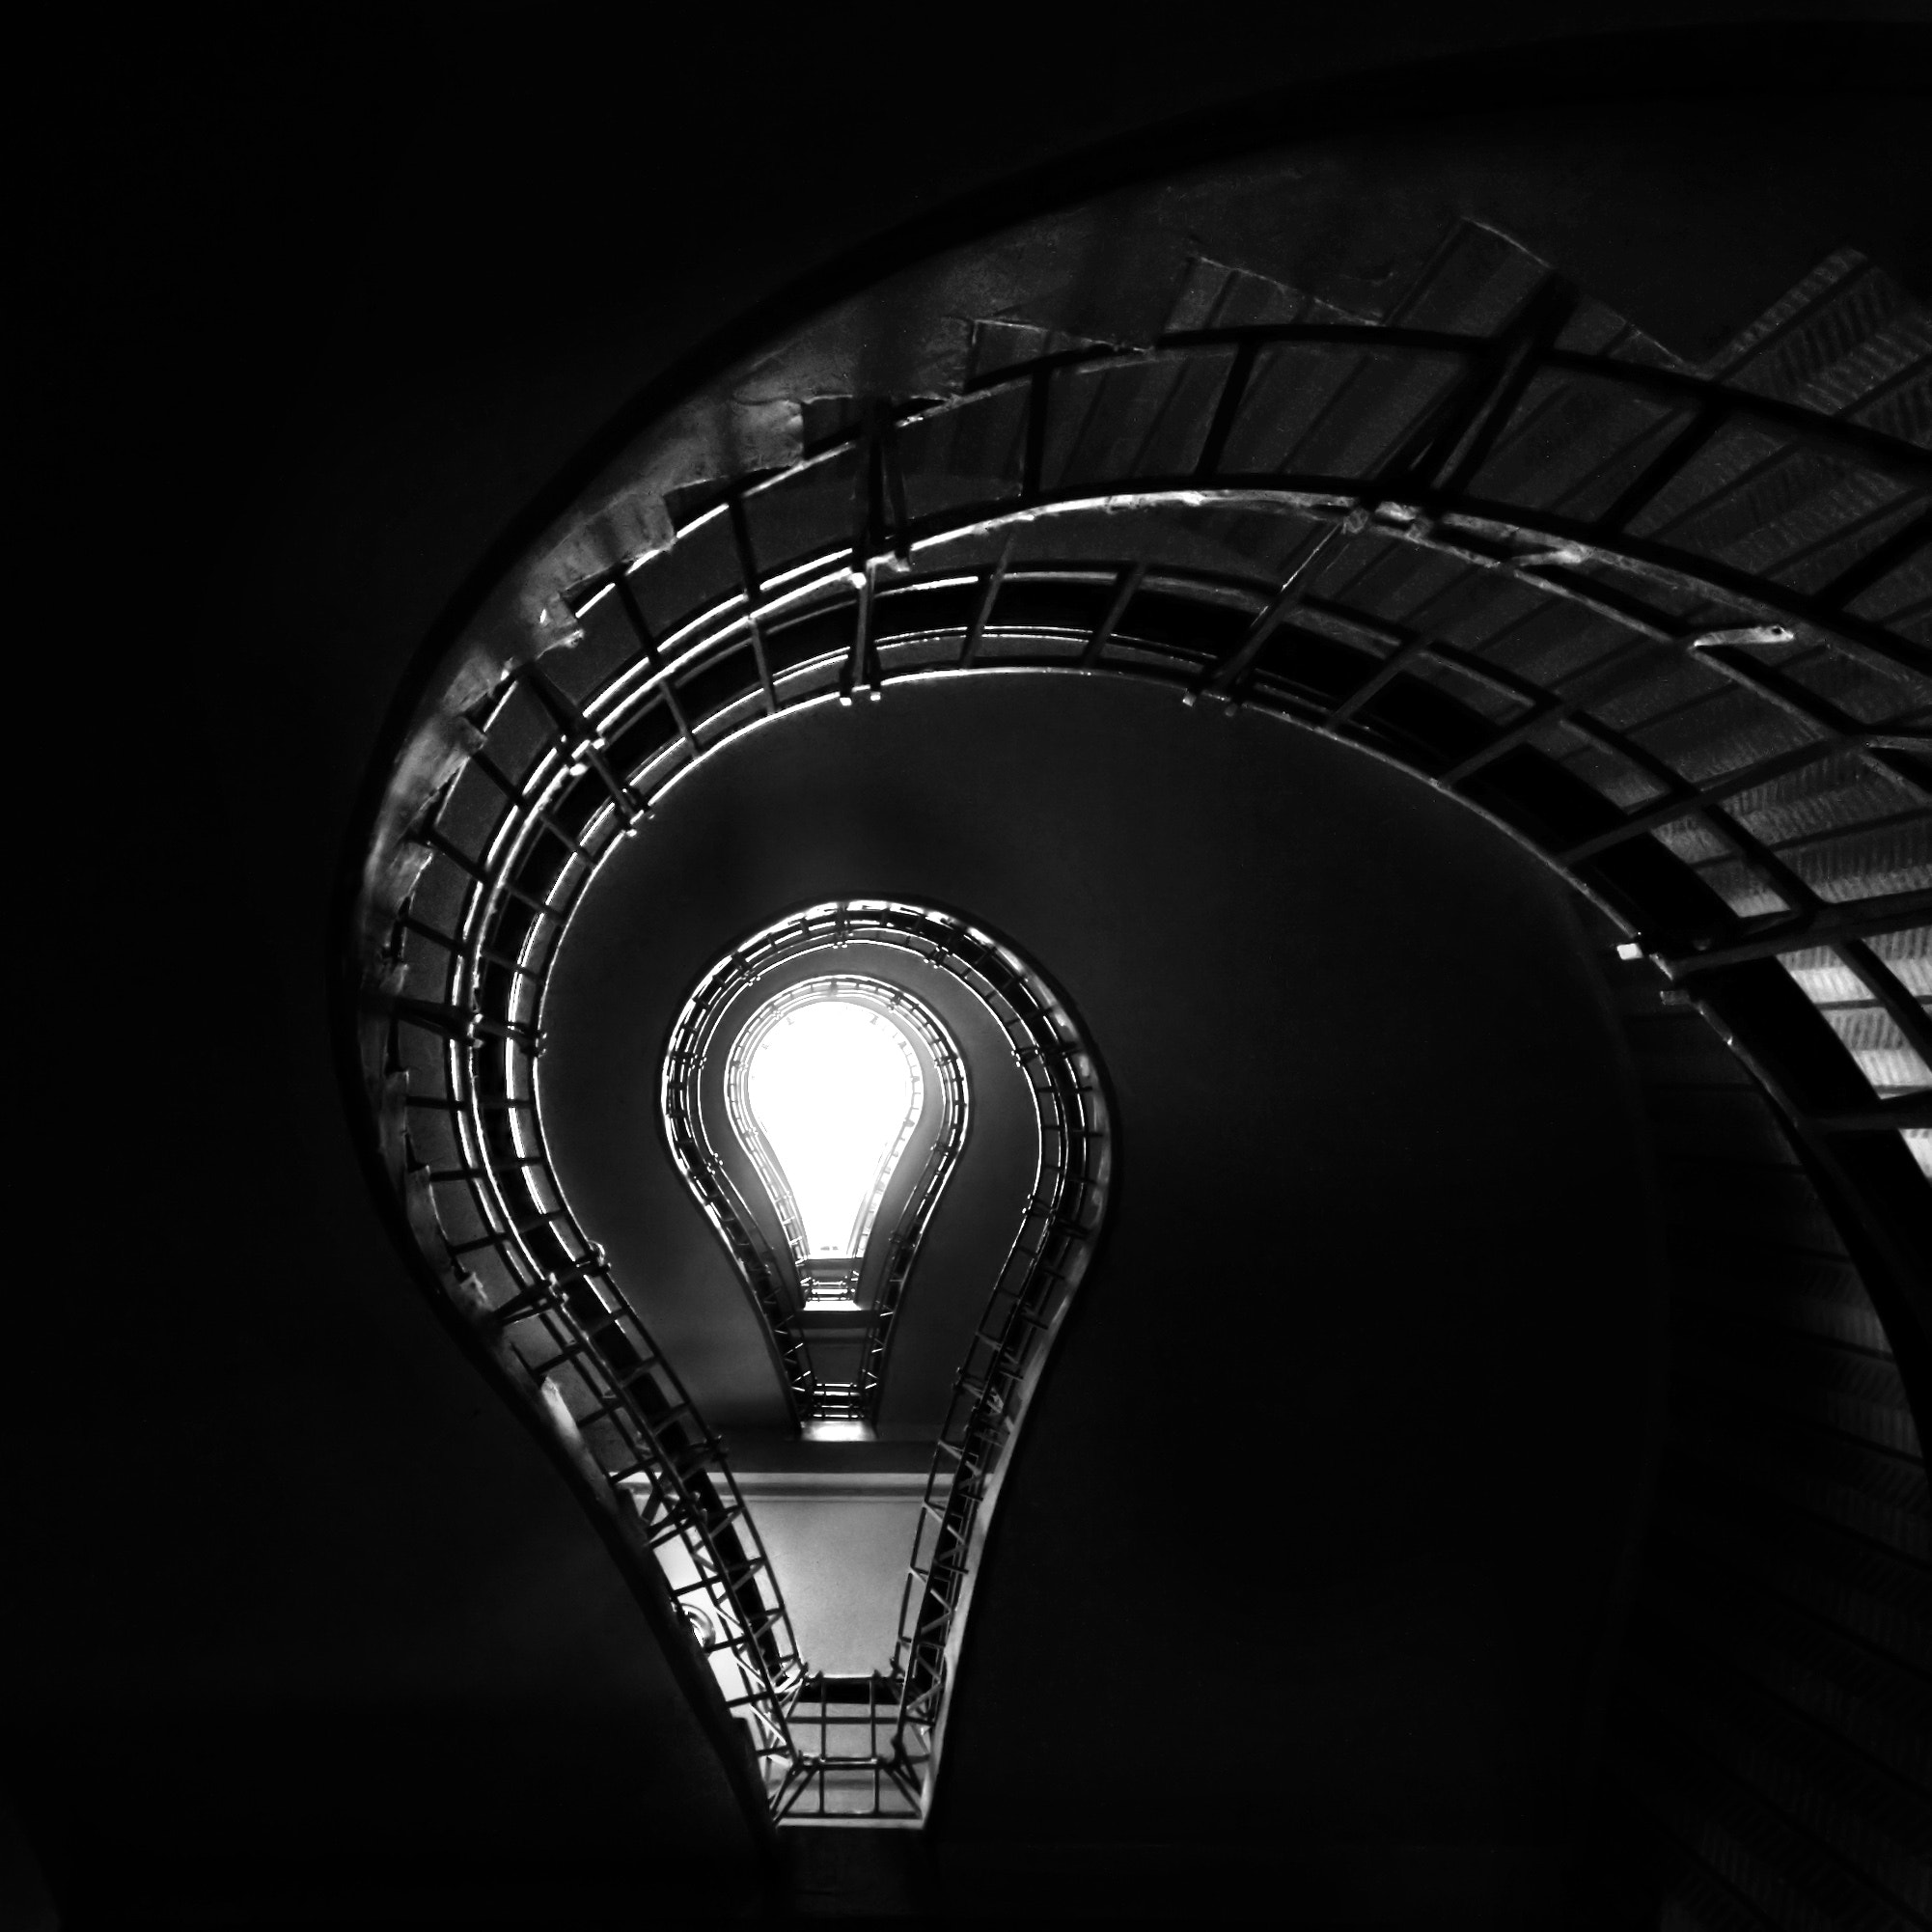 Photograph Stairs by Joni Järvinen on 500px